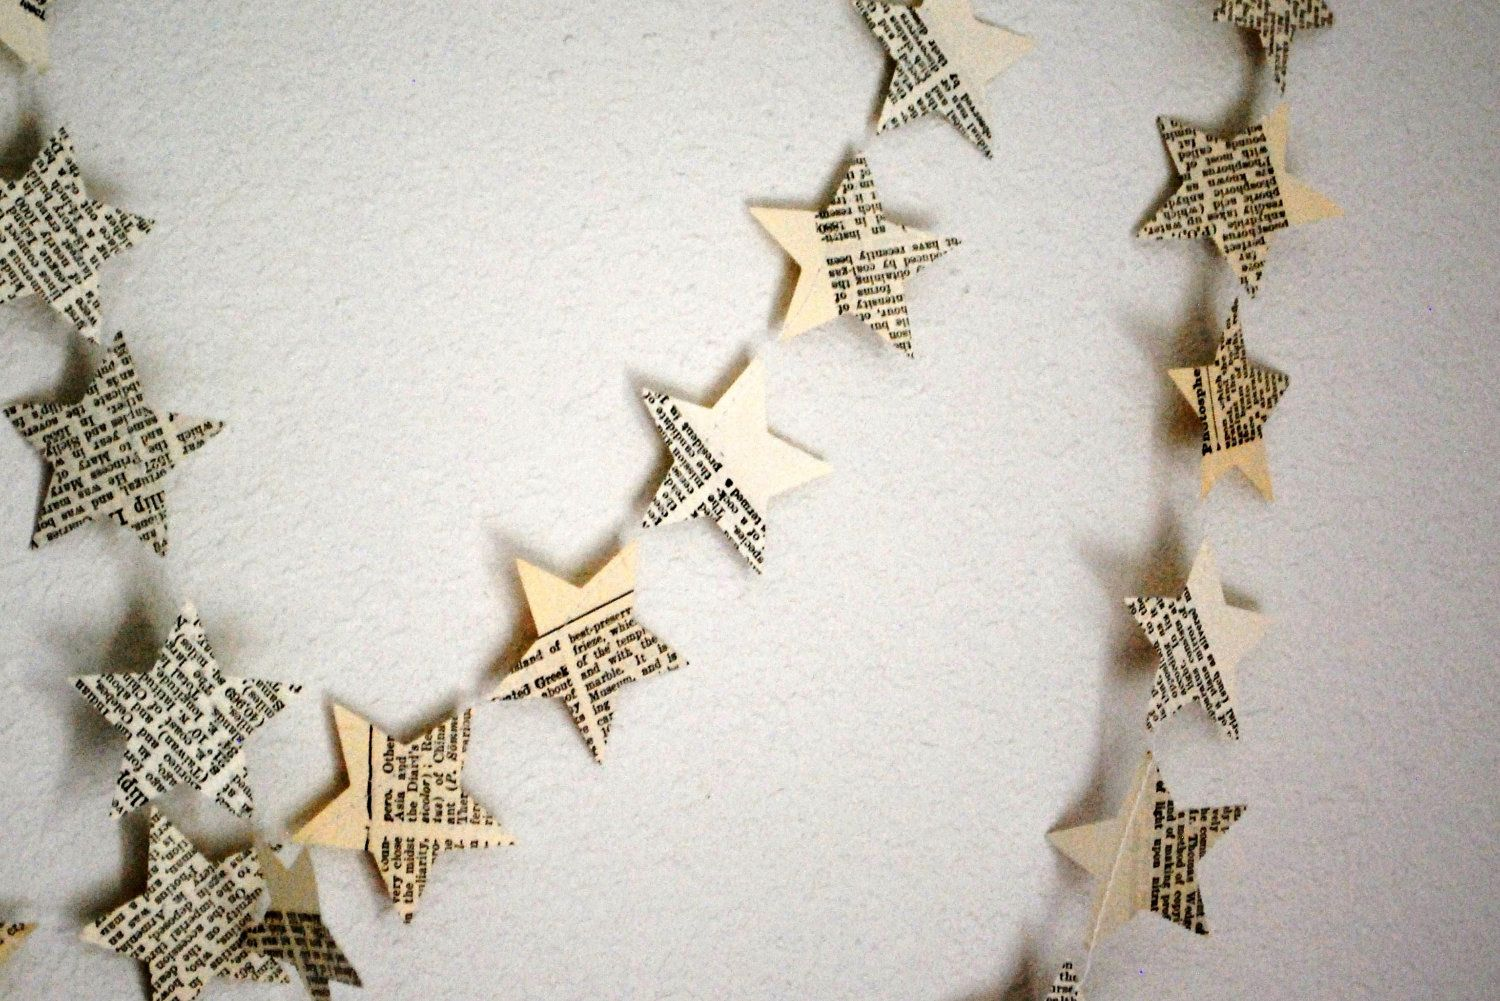 30 Feet Of Yards Of Stars Garlands Vintage Paper 30 00 Via Etsy Christmas Decorations Australian Star Garland Crafts